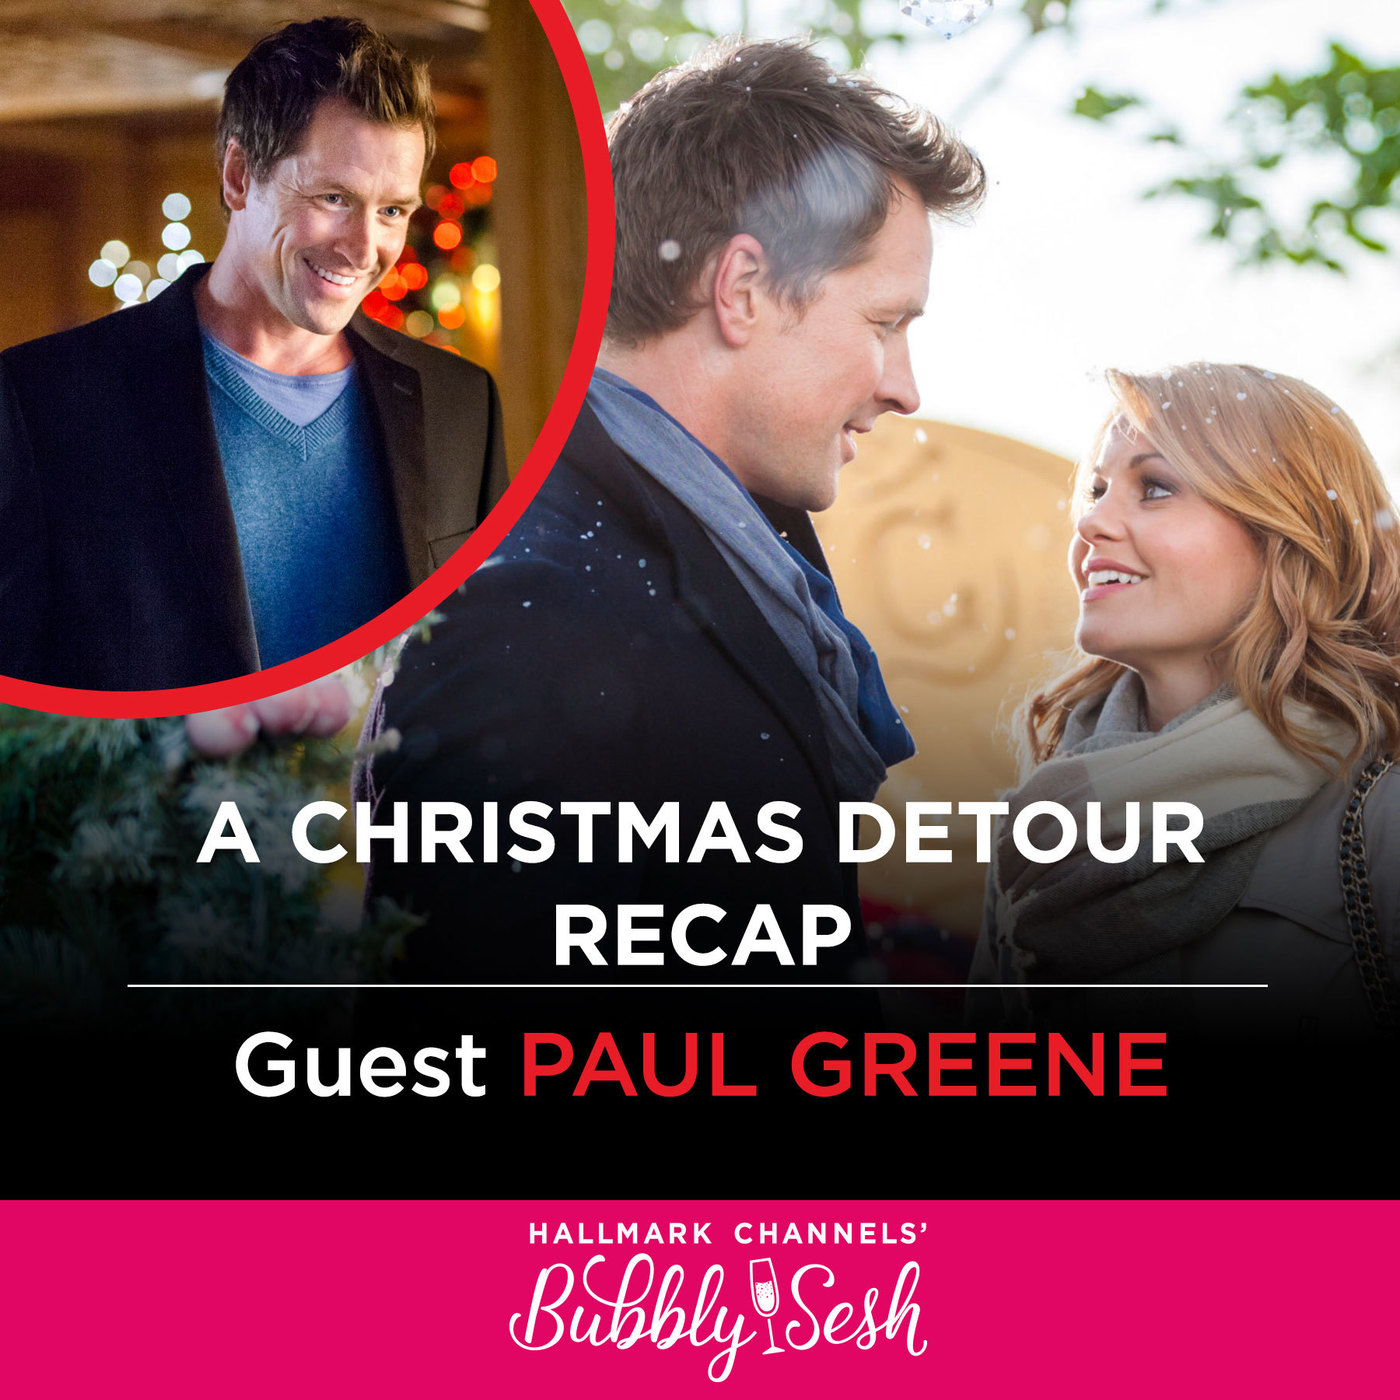 A Christmas Detour Recap with Guest Paul Greene